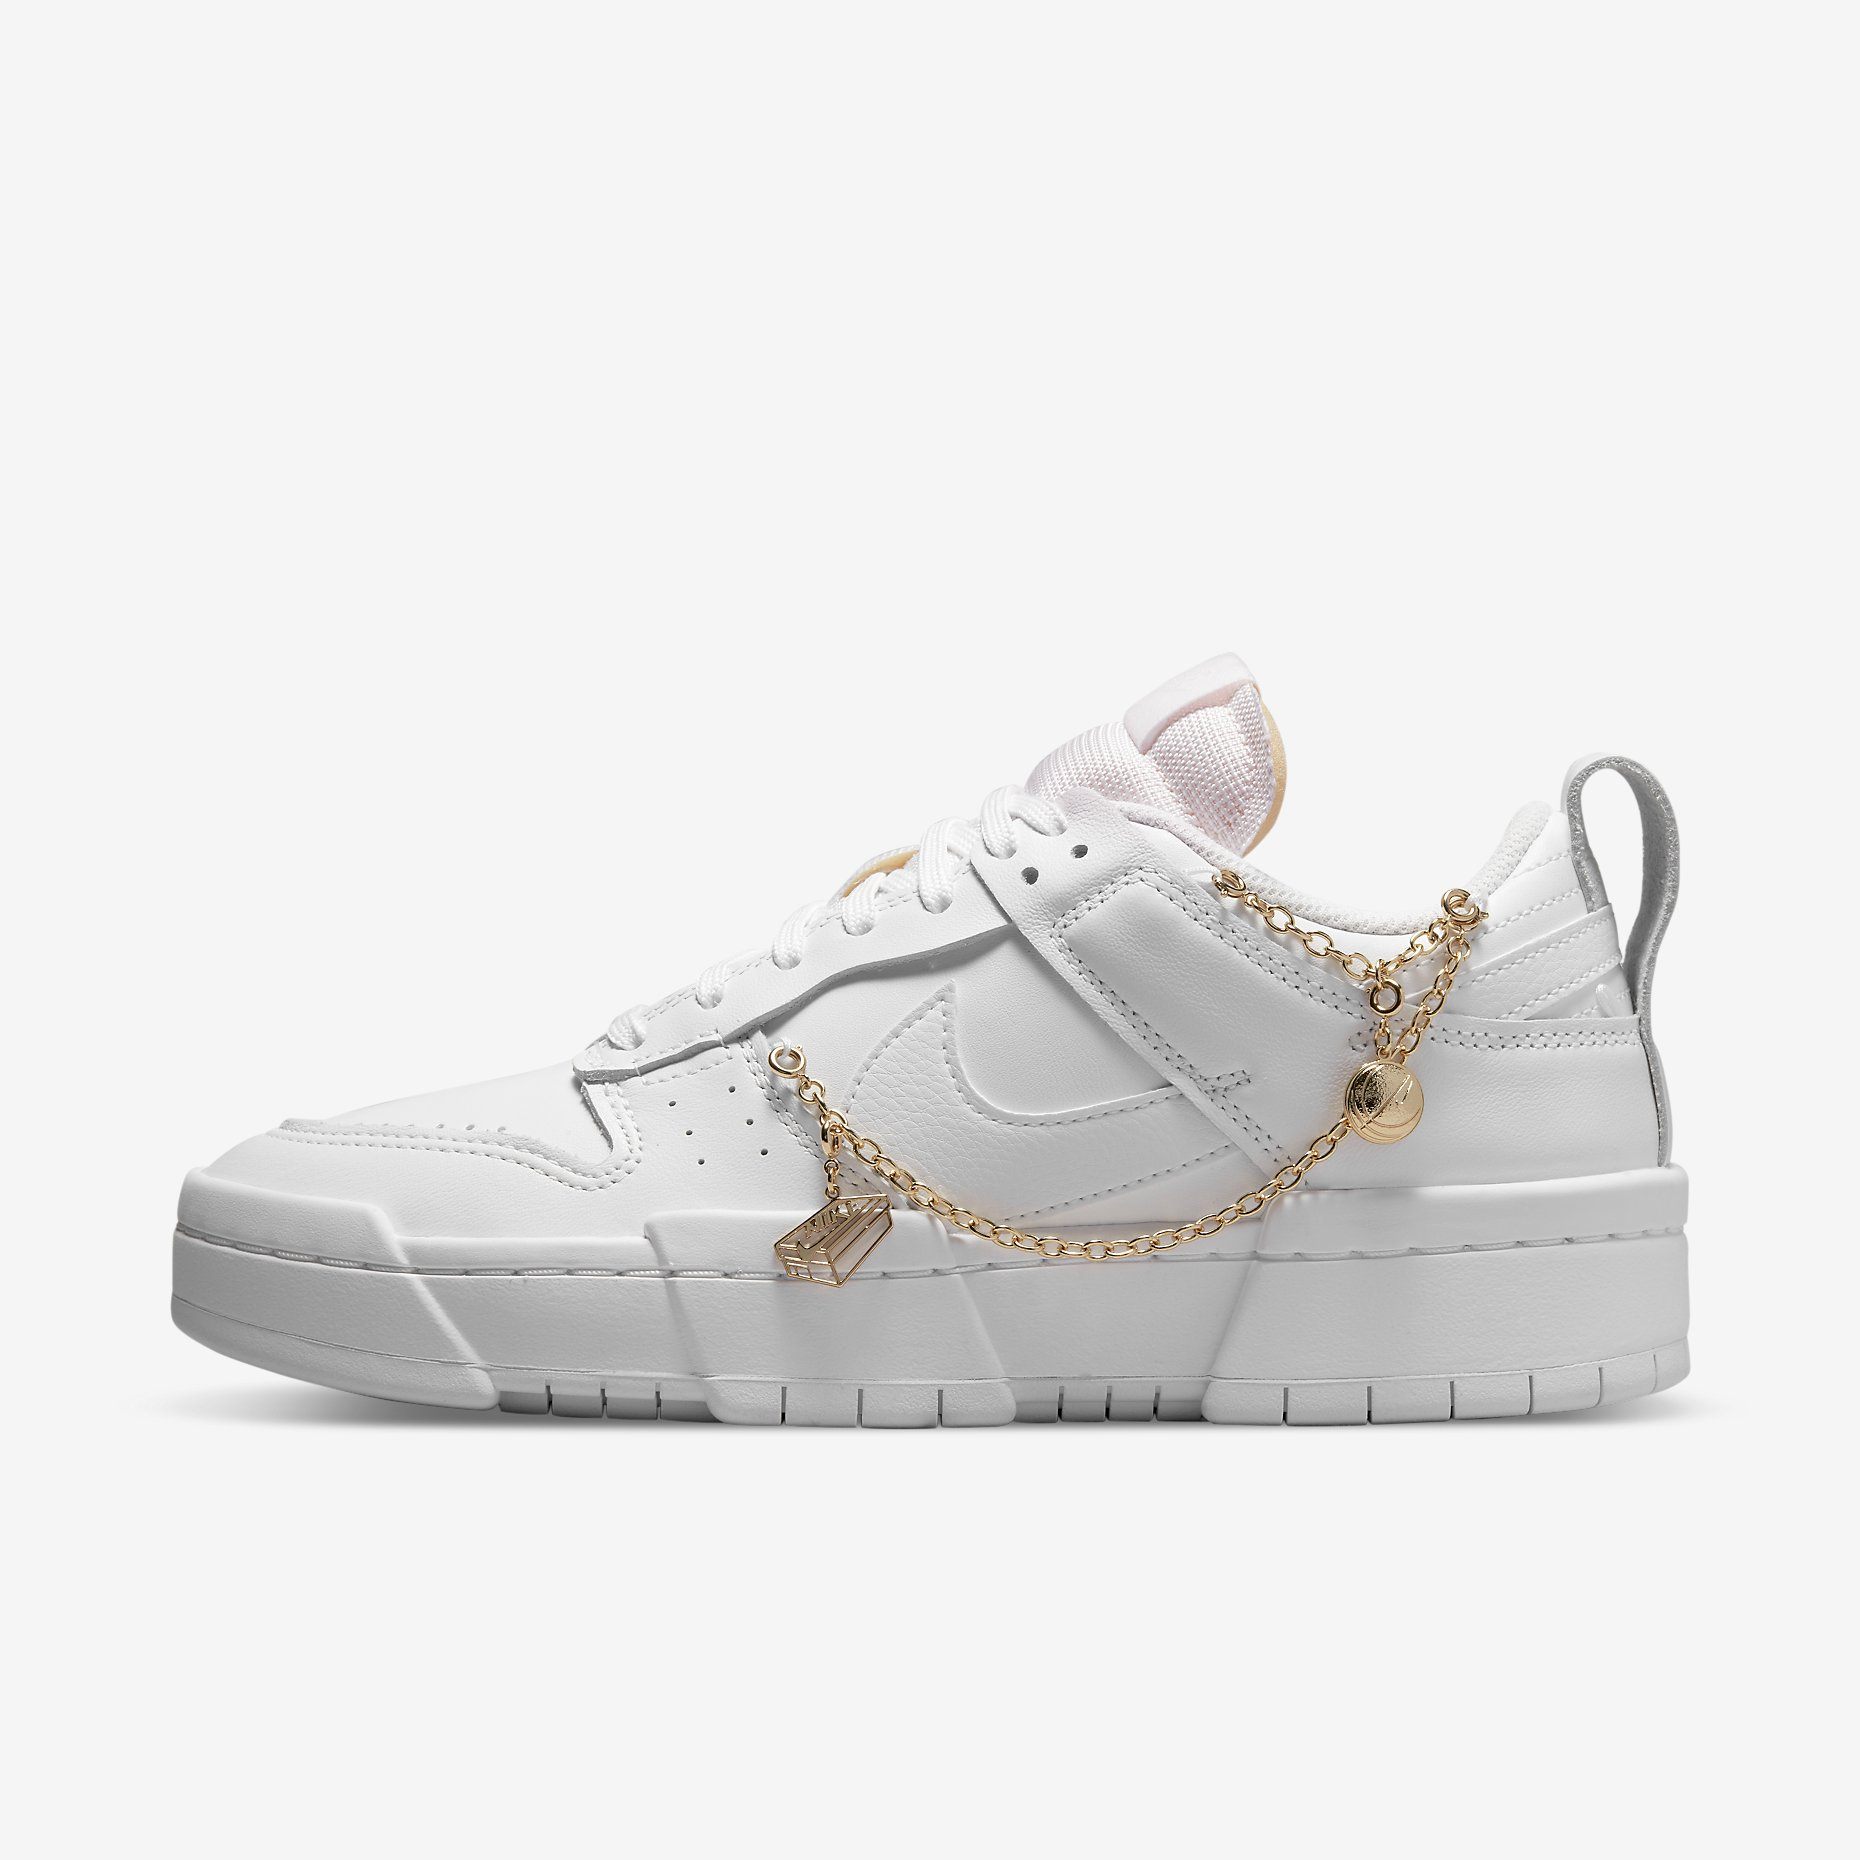 Women's Nike Dunk Low Disrupt 'Gold Charms'